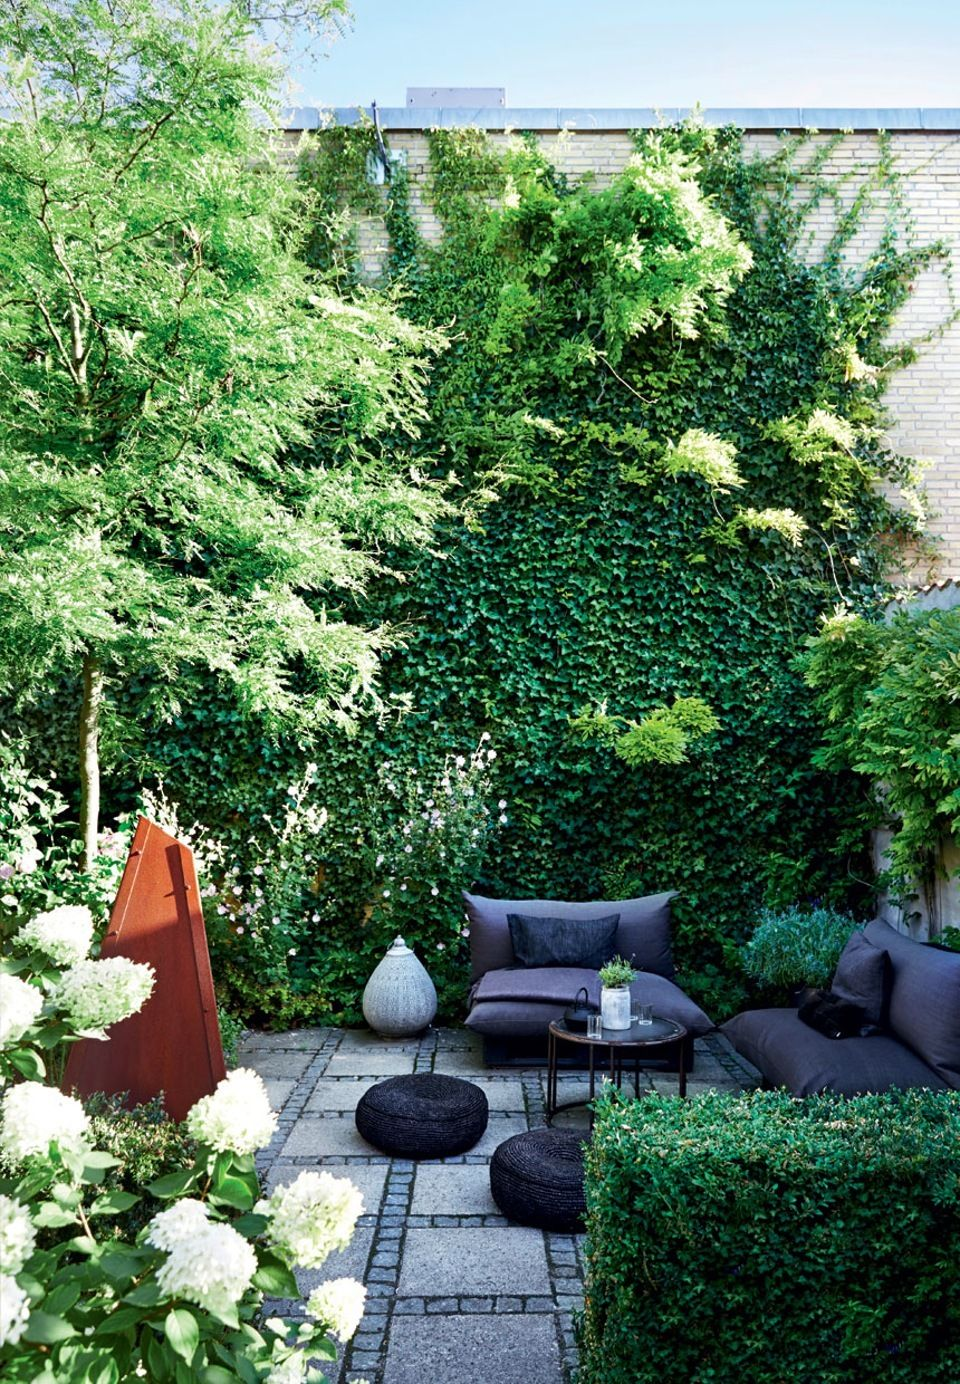 We love the relaxed atmosphere in this green backyard with comfy garden furniture.